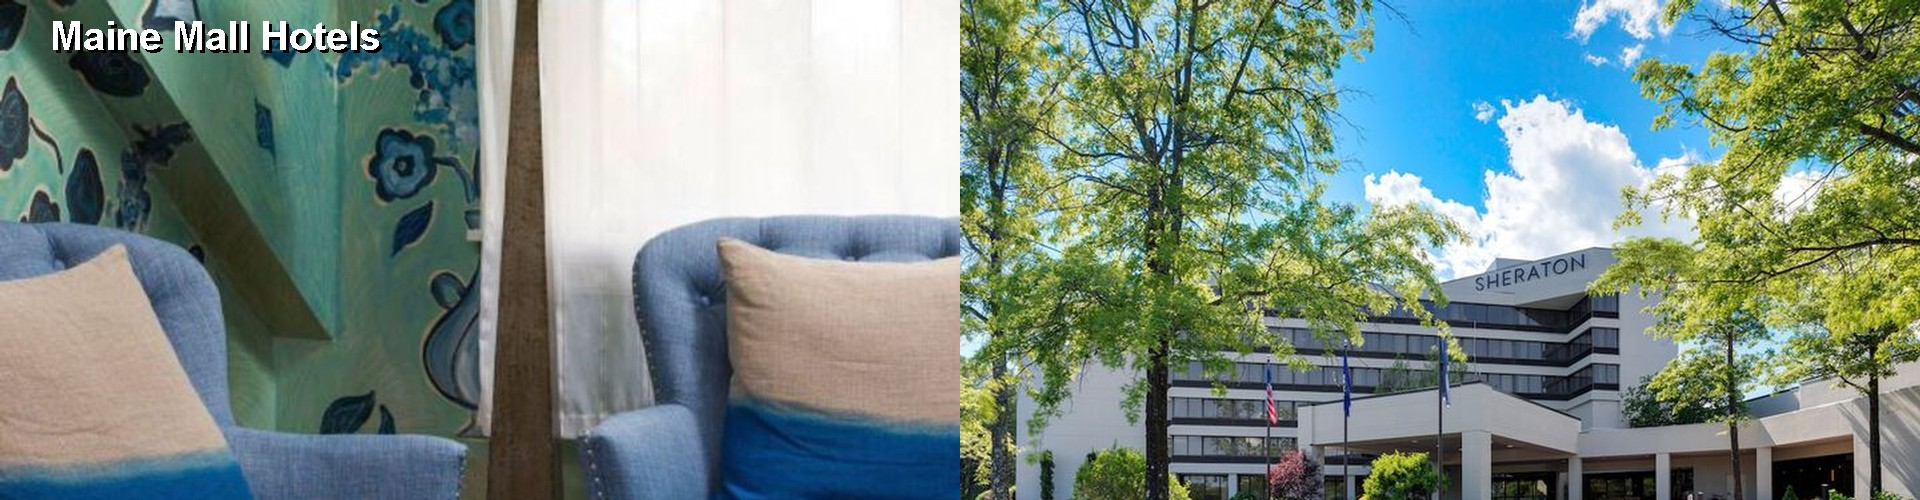 5 Best Hotels near Maine Mall